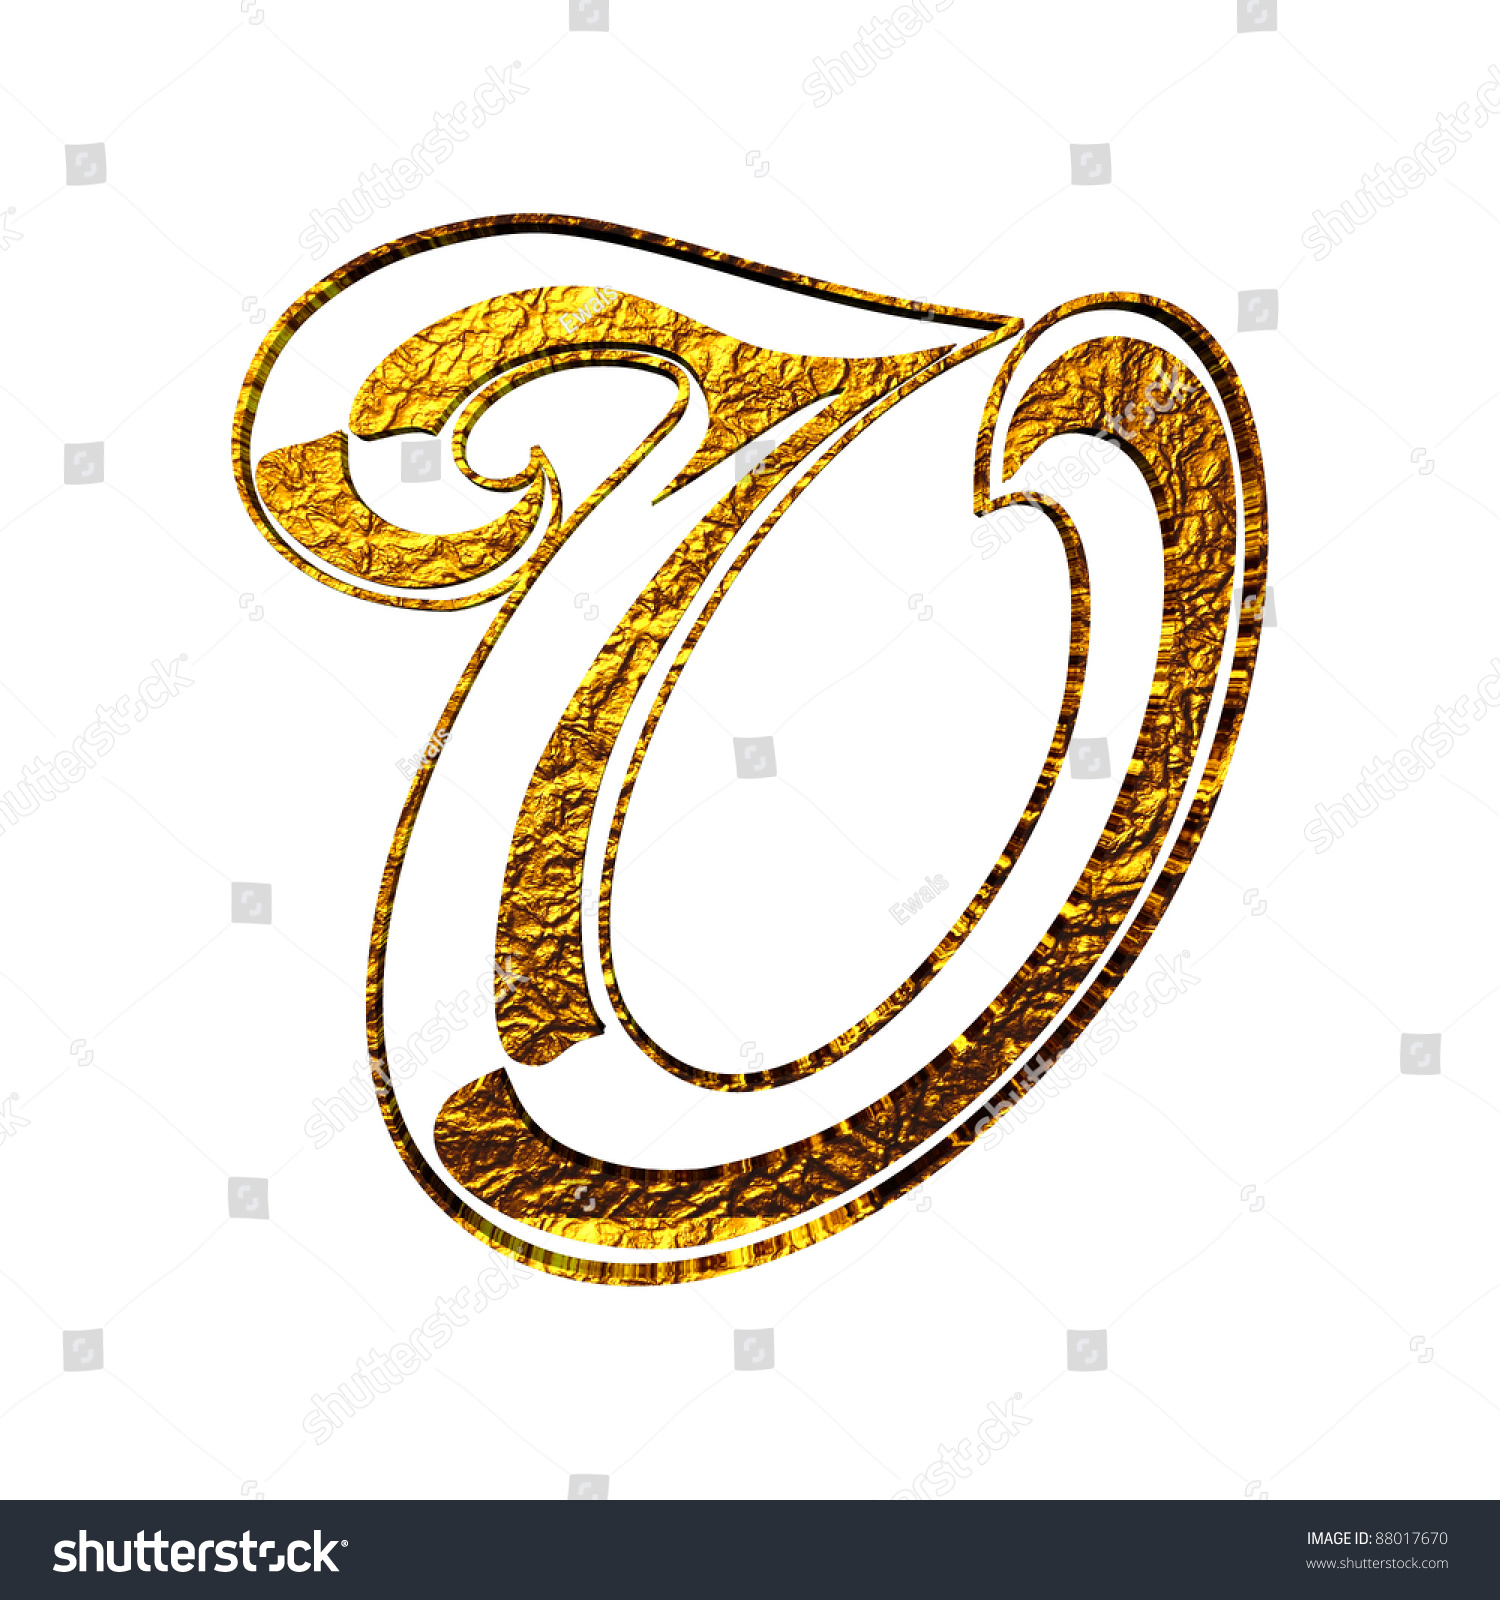 Vintage initial gold alphabet symbol o stock illustration 88017670 vintage initial gold alphabet symbol o isolated on white biocorpaavc